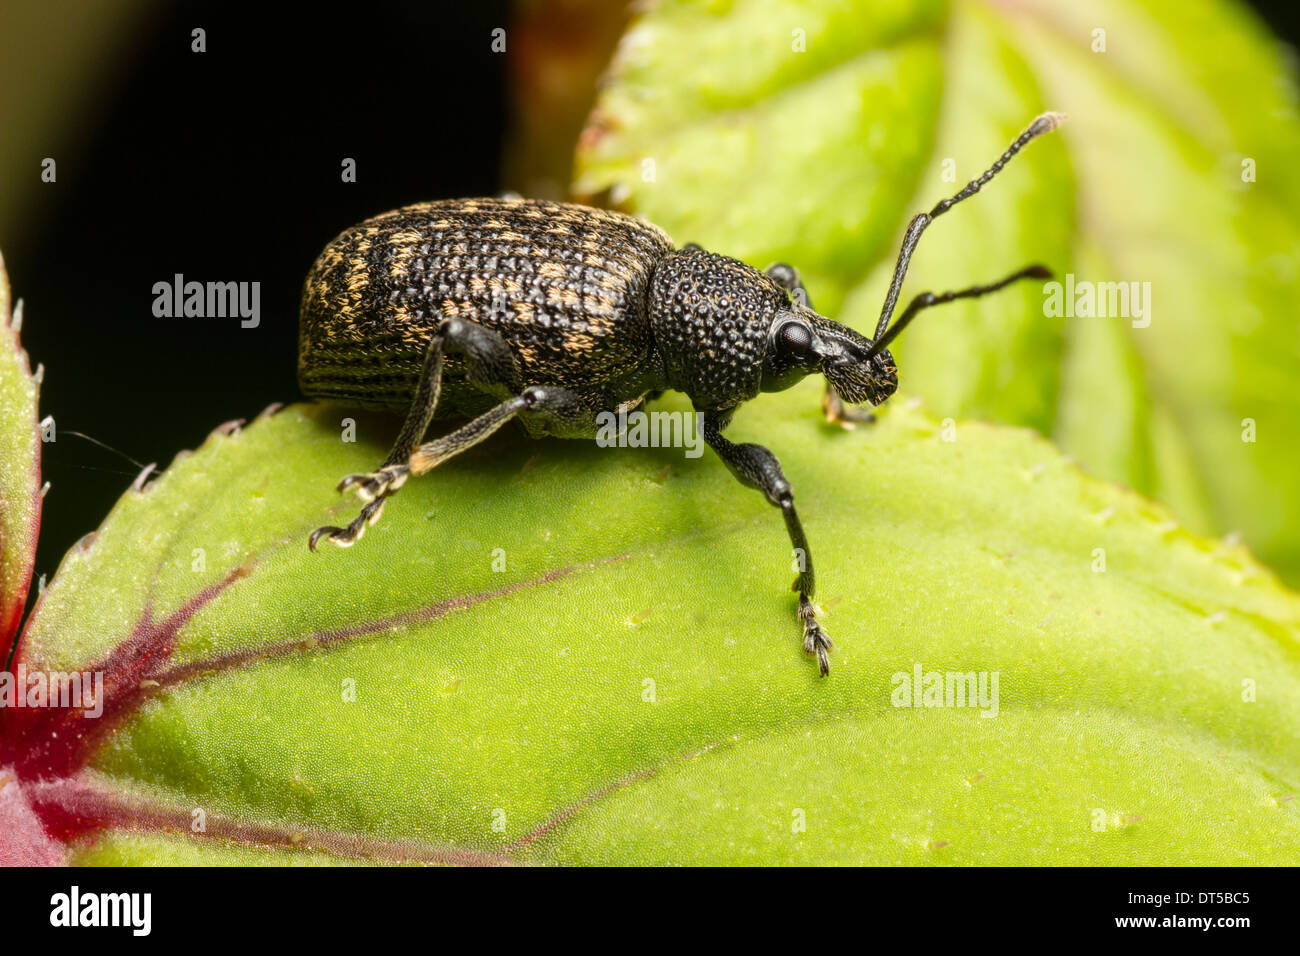 Black Vine Weevil, Otiorhynchus sulcatus, on a leaf of Fuchsia 'Genii' in a Plymouth garden Stock Photo